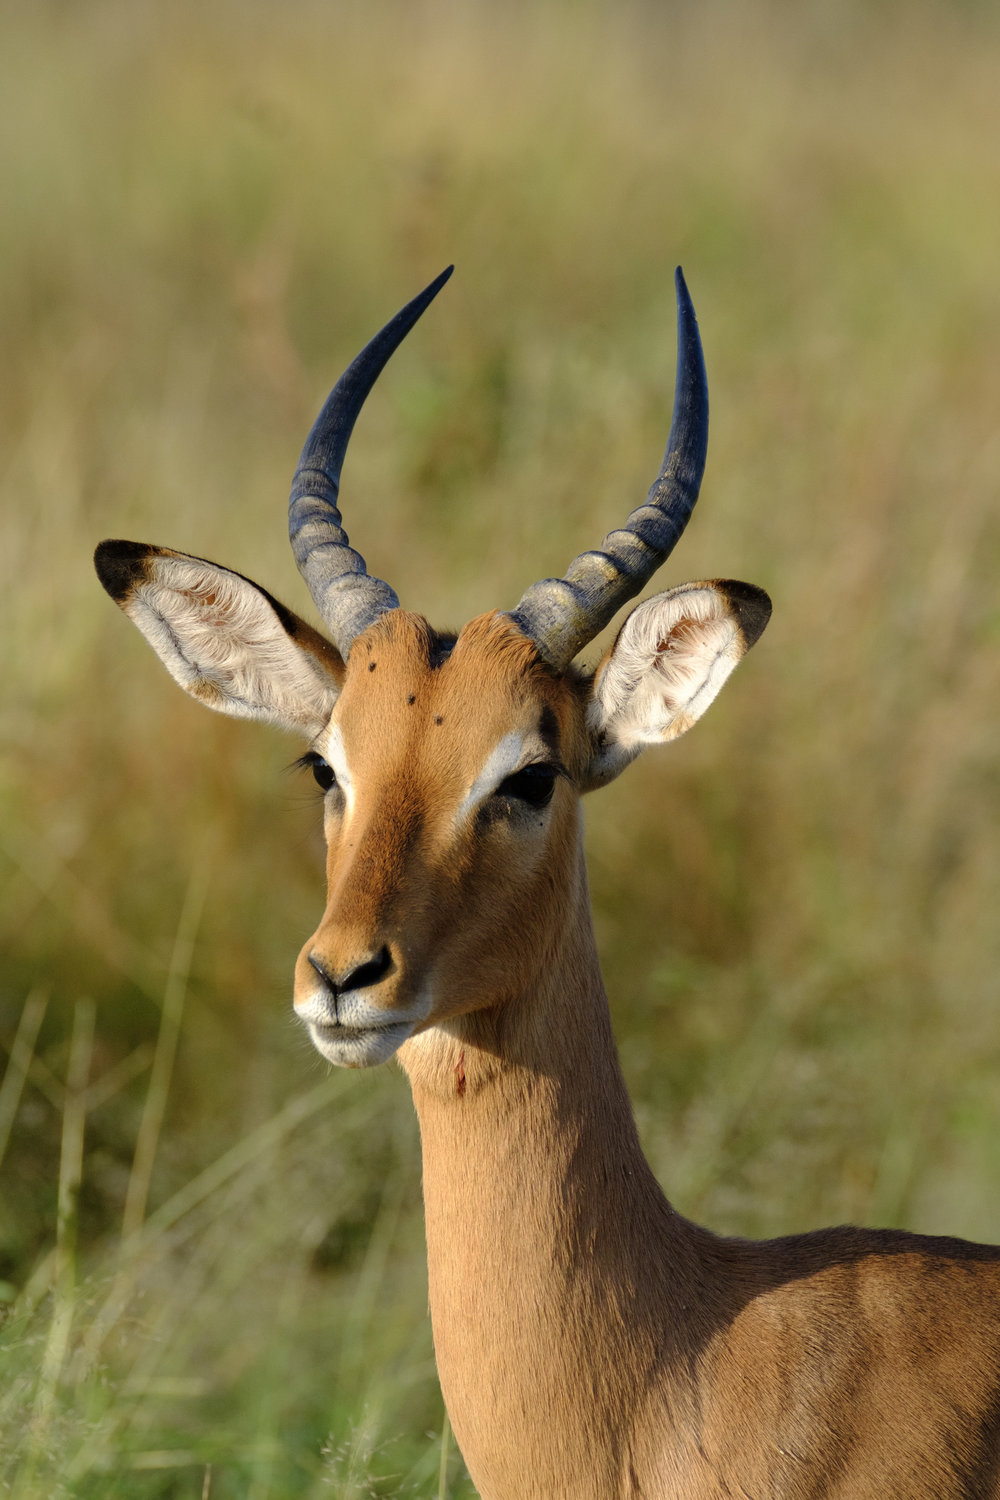 Impala - Fast Food of the Kruger